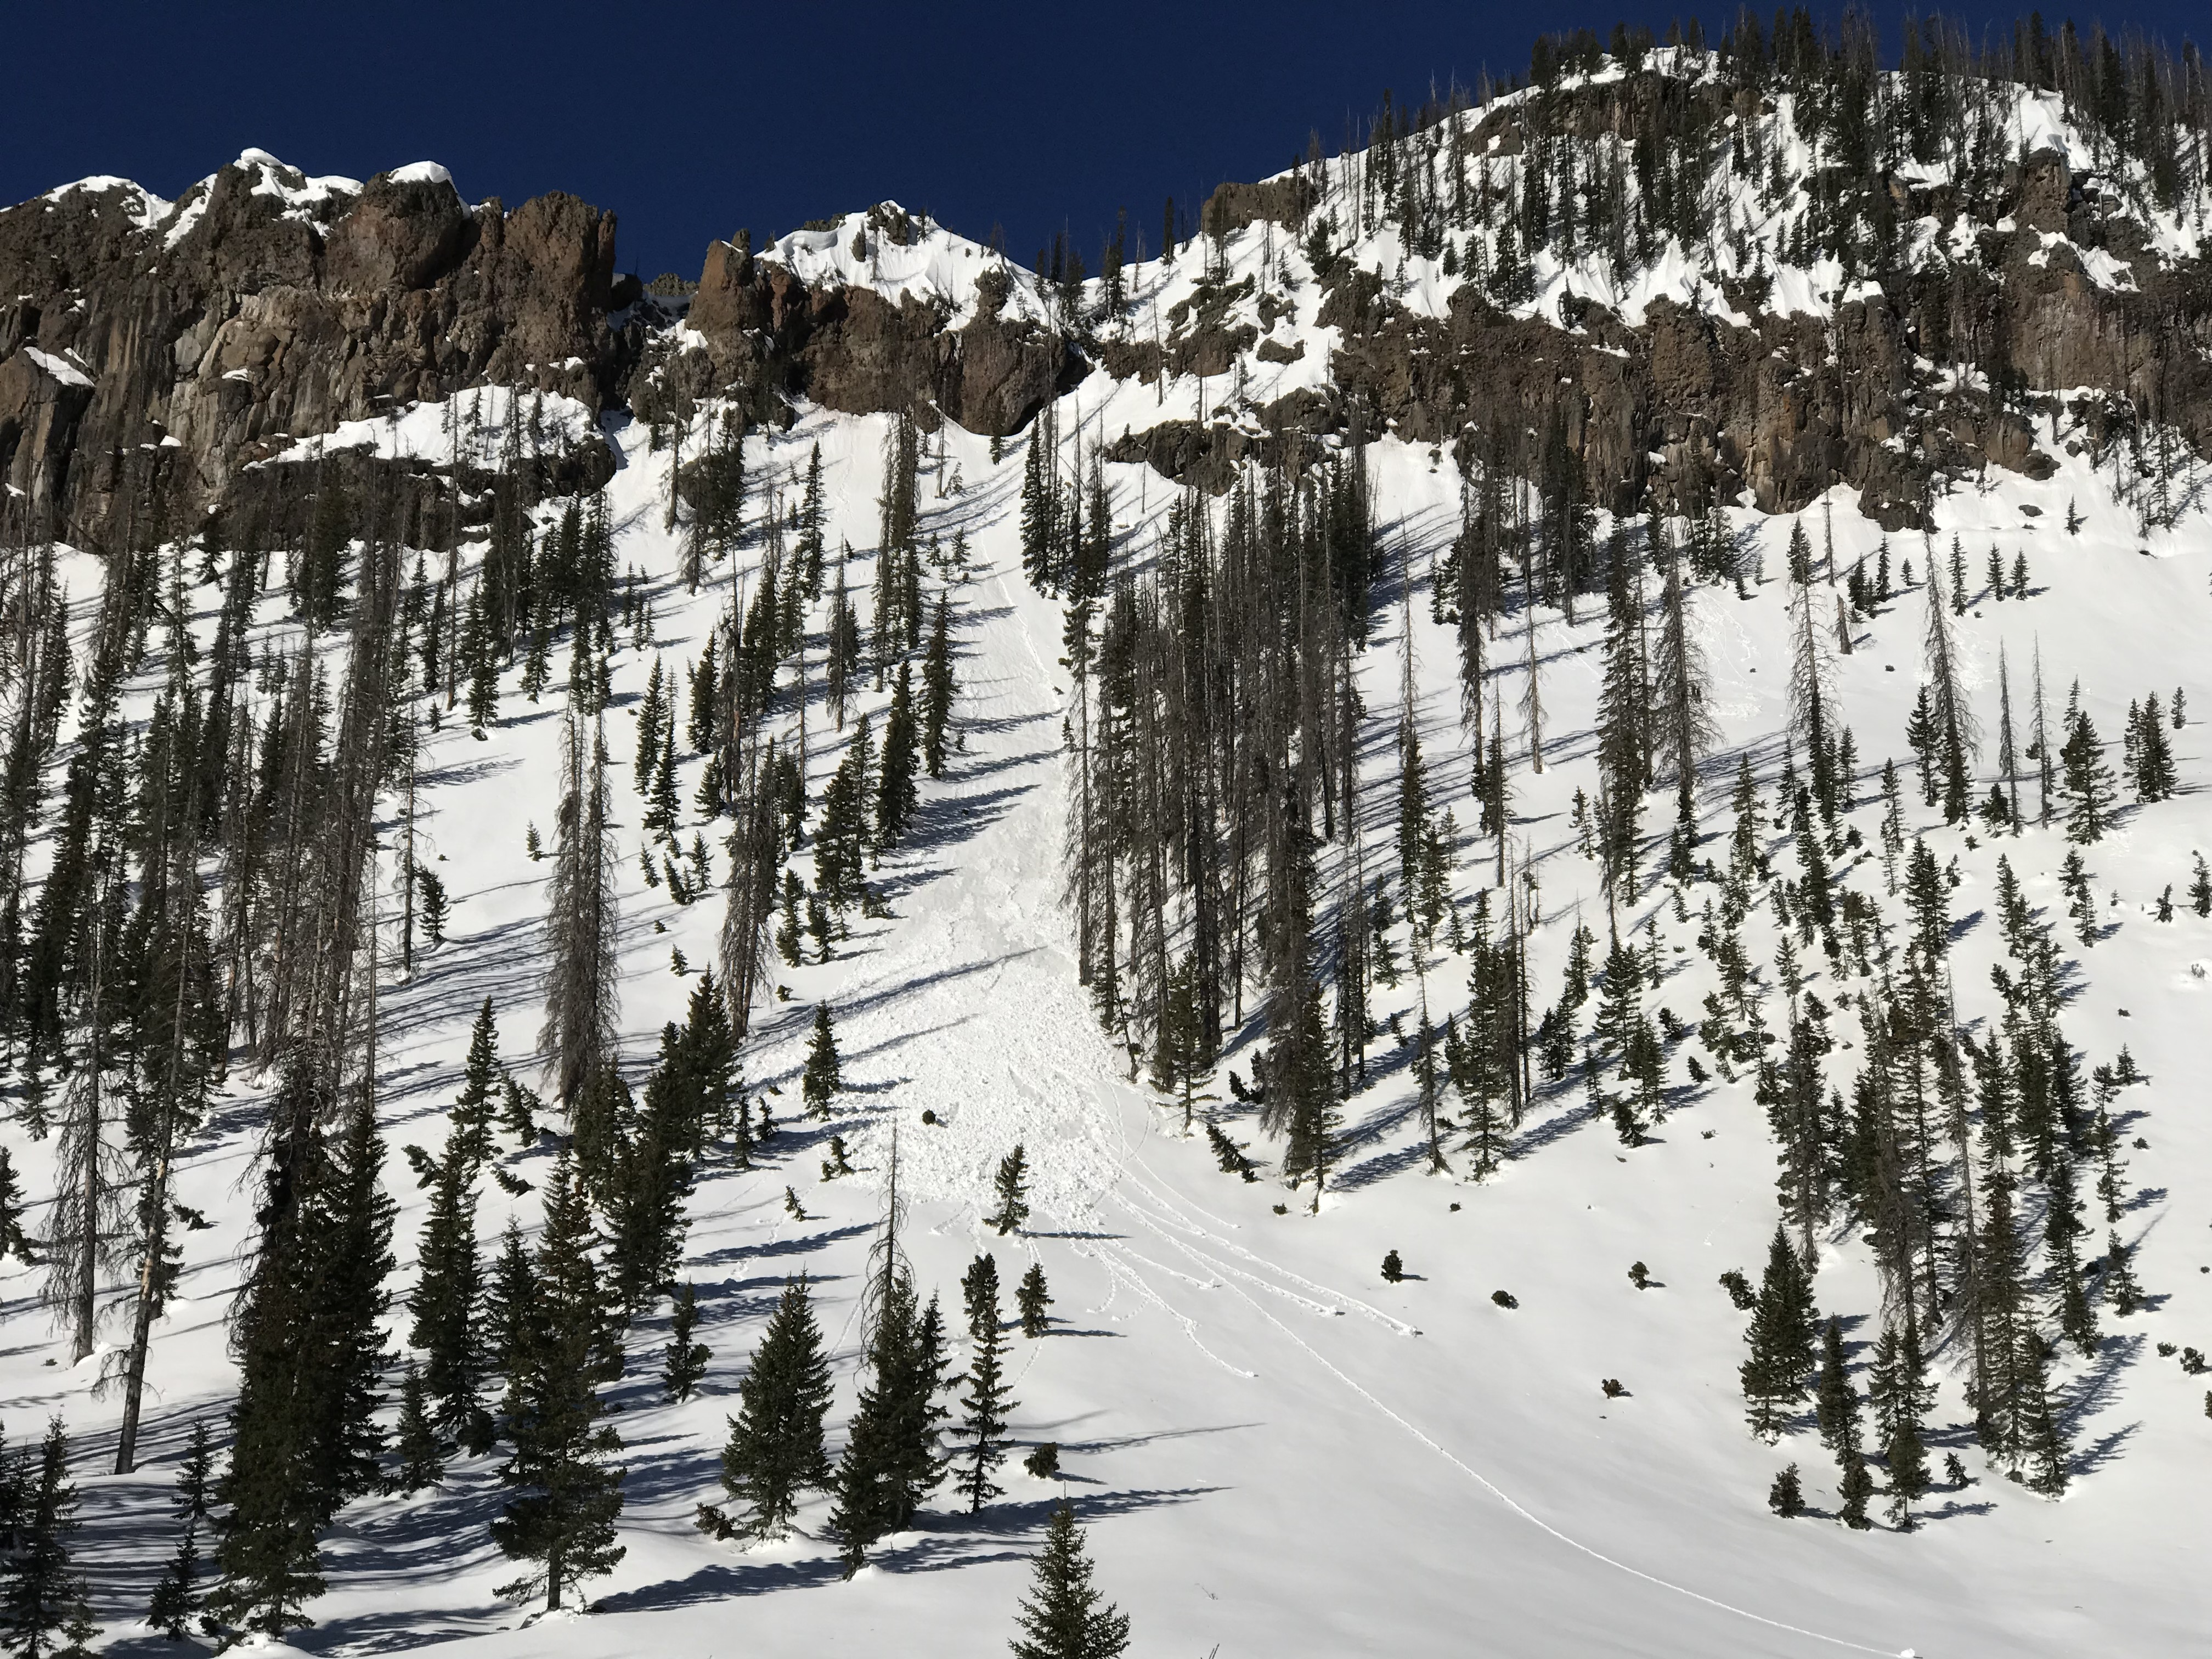 Recent wet loose avalanche triggered by a cornice fall from